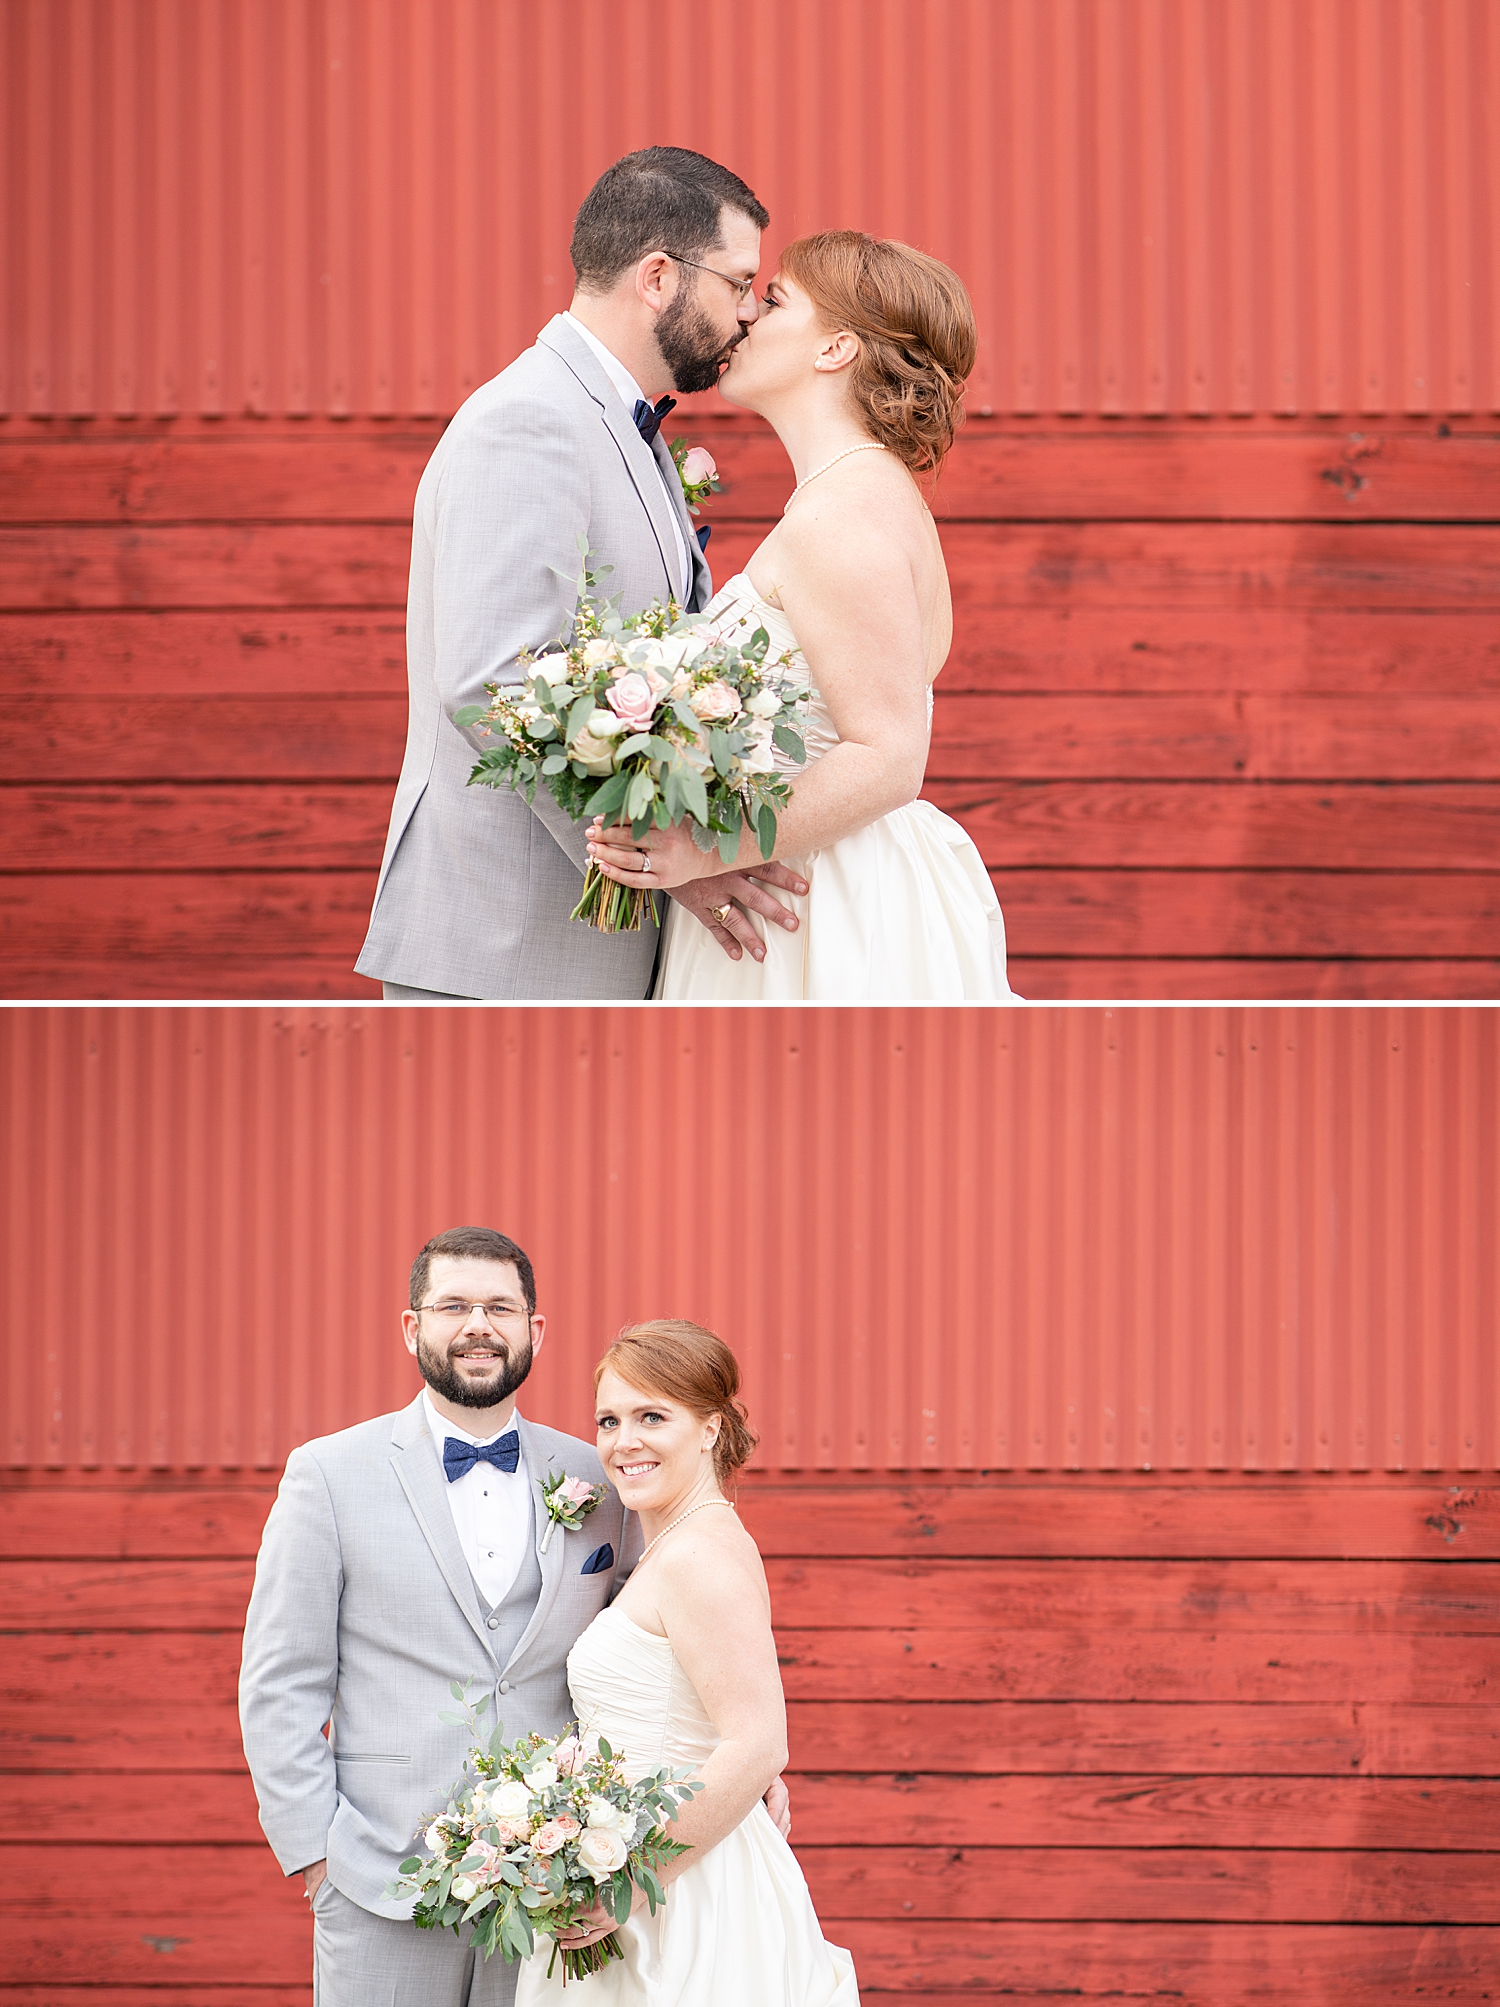 These two love their red barn wall photos!! I have to say it was another great spot for their portraits!!